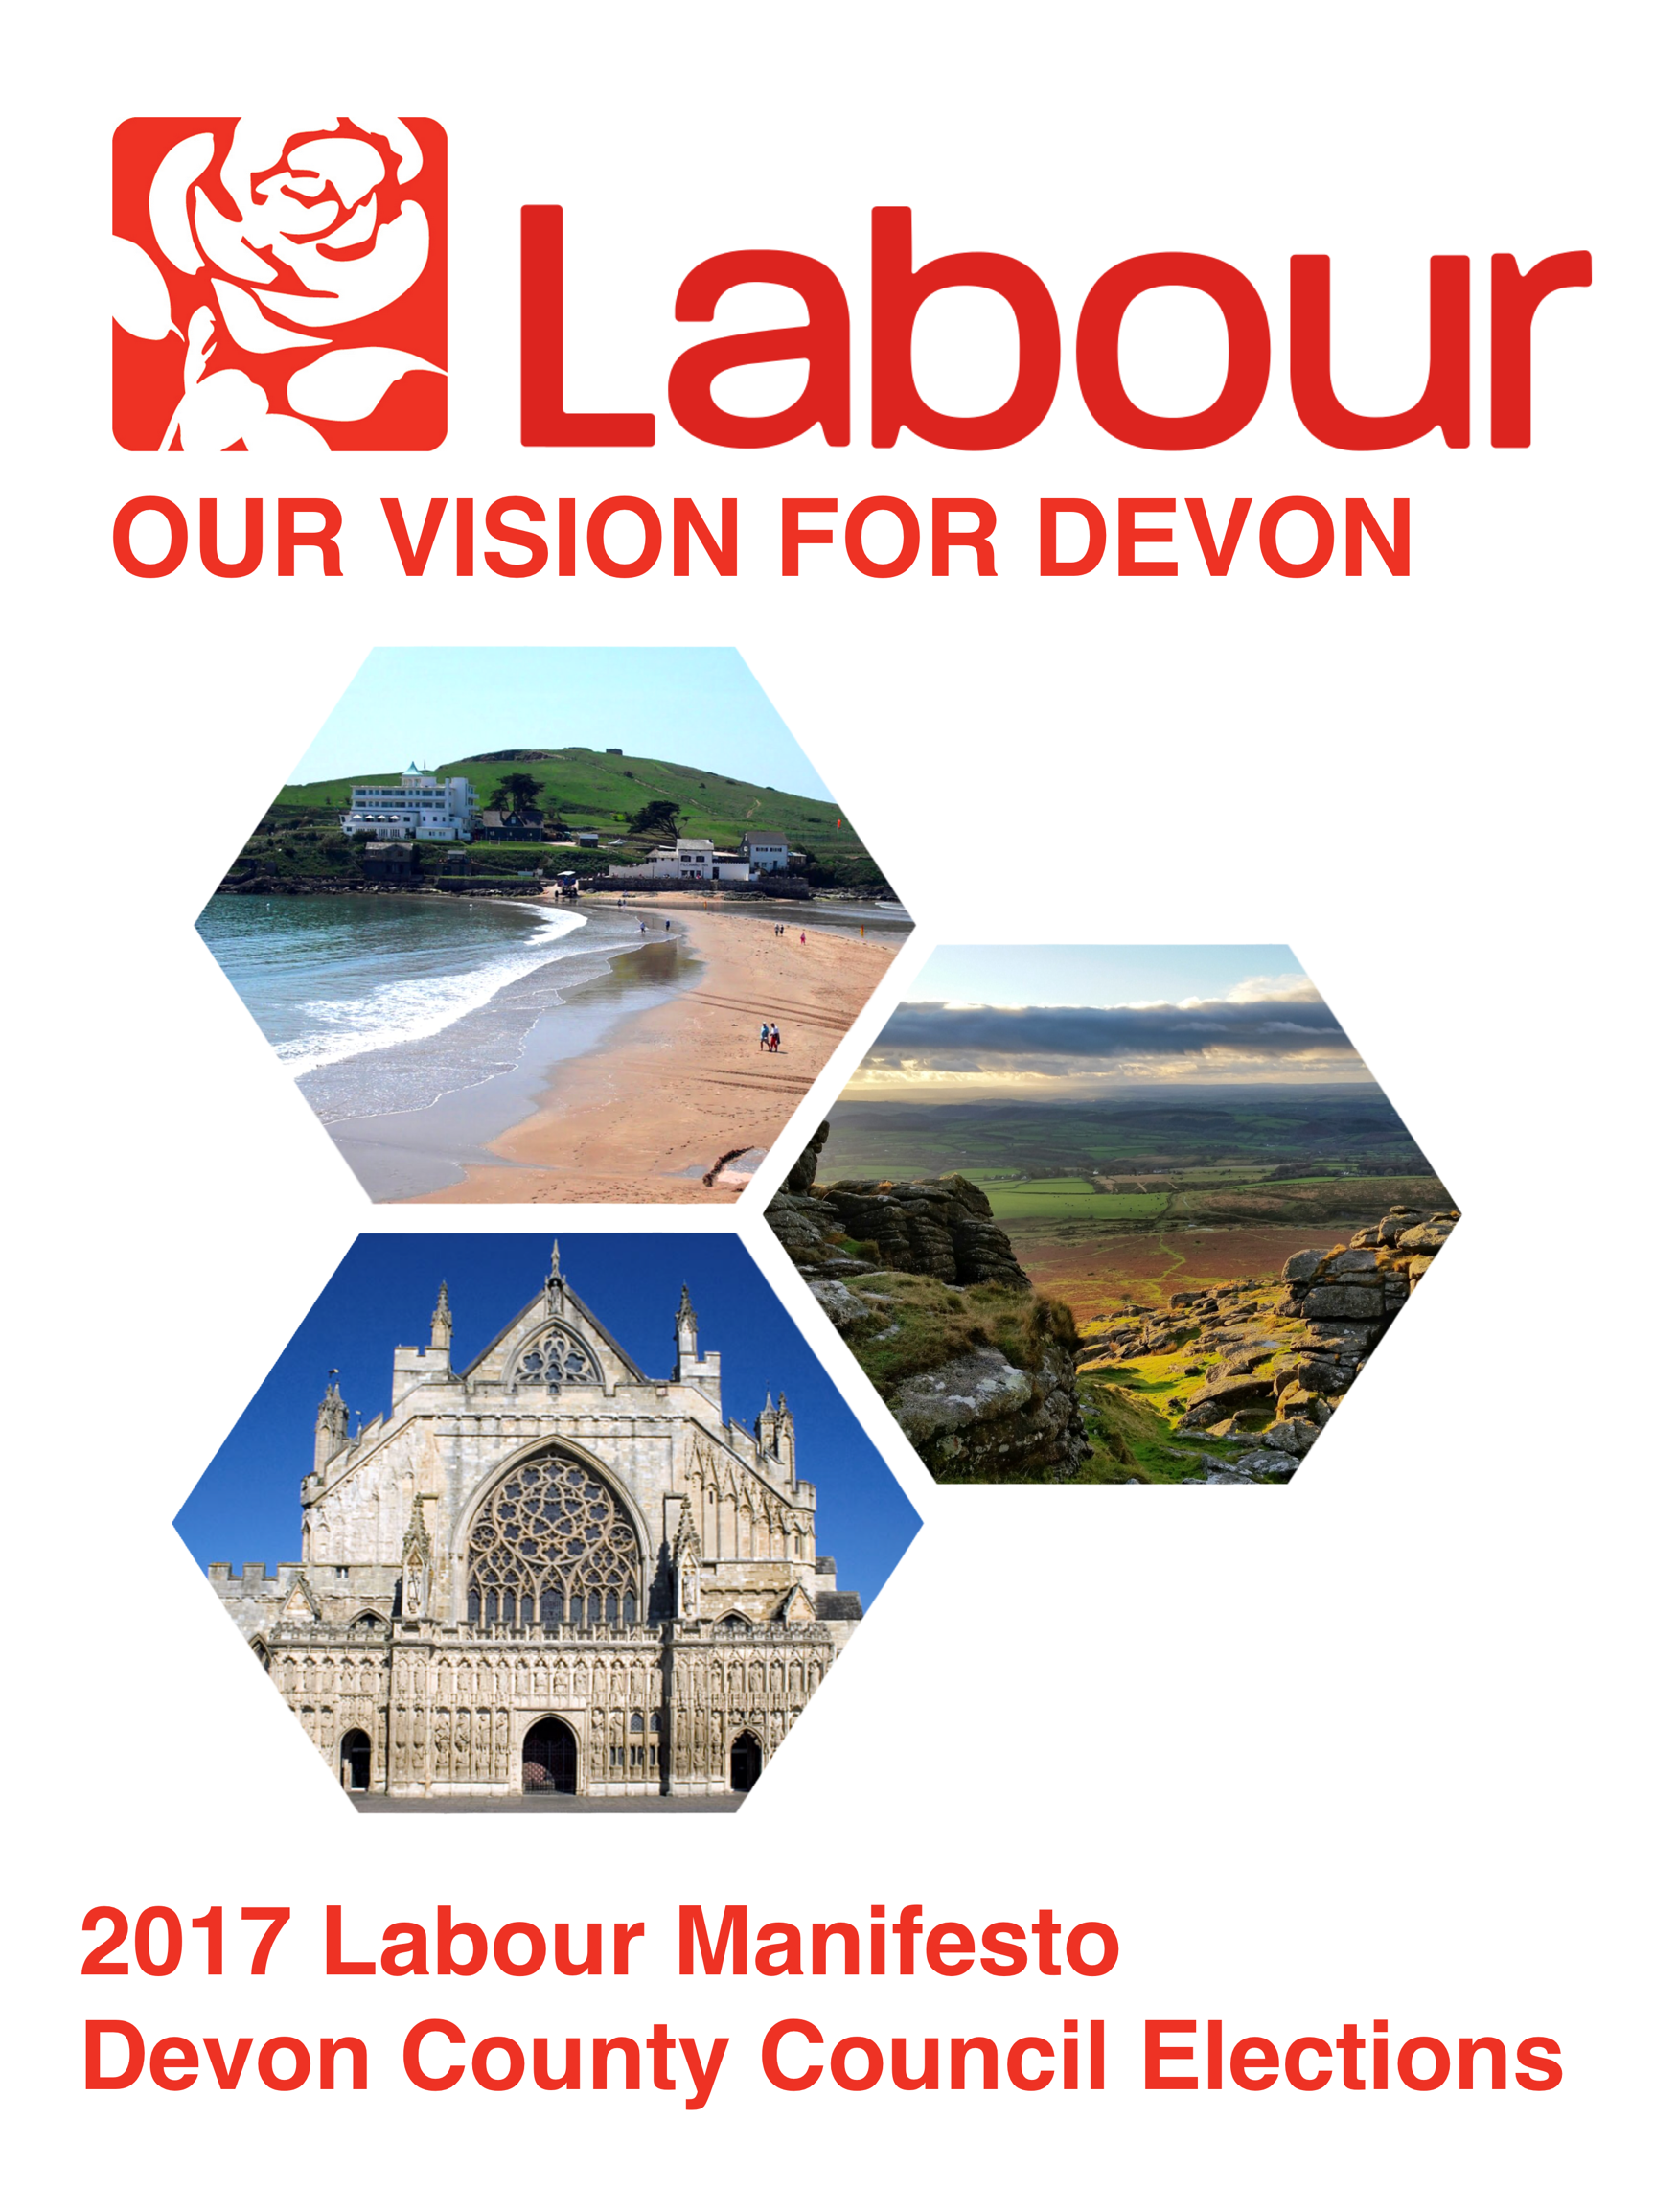 Labour's_vision_for_Devon.png